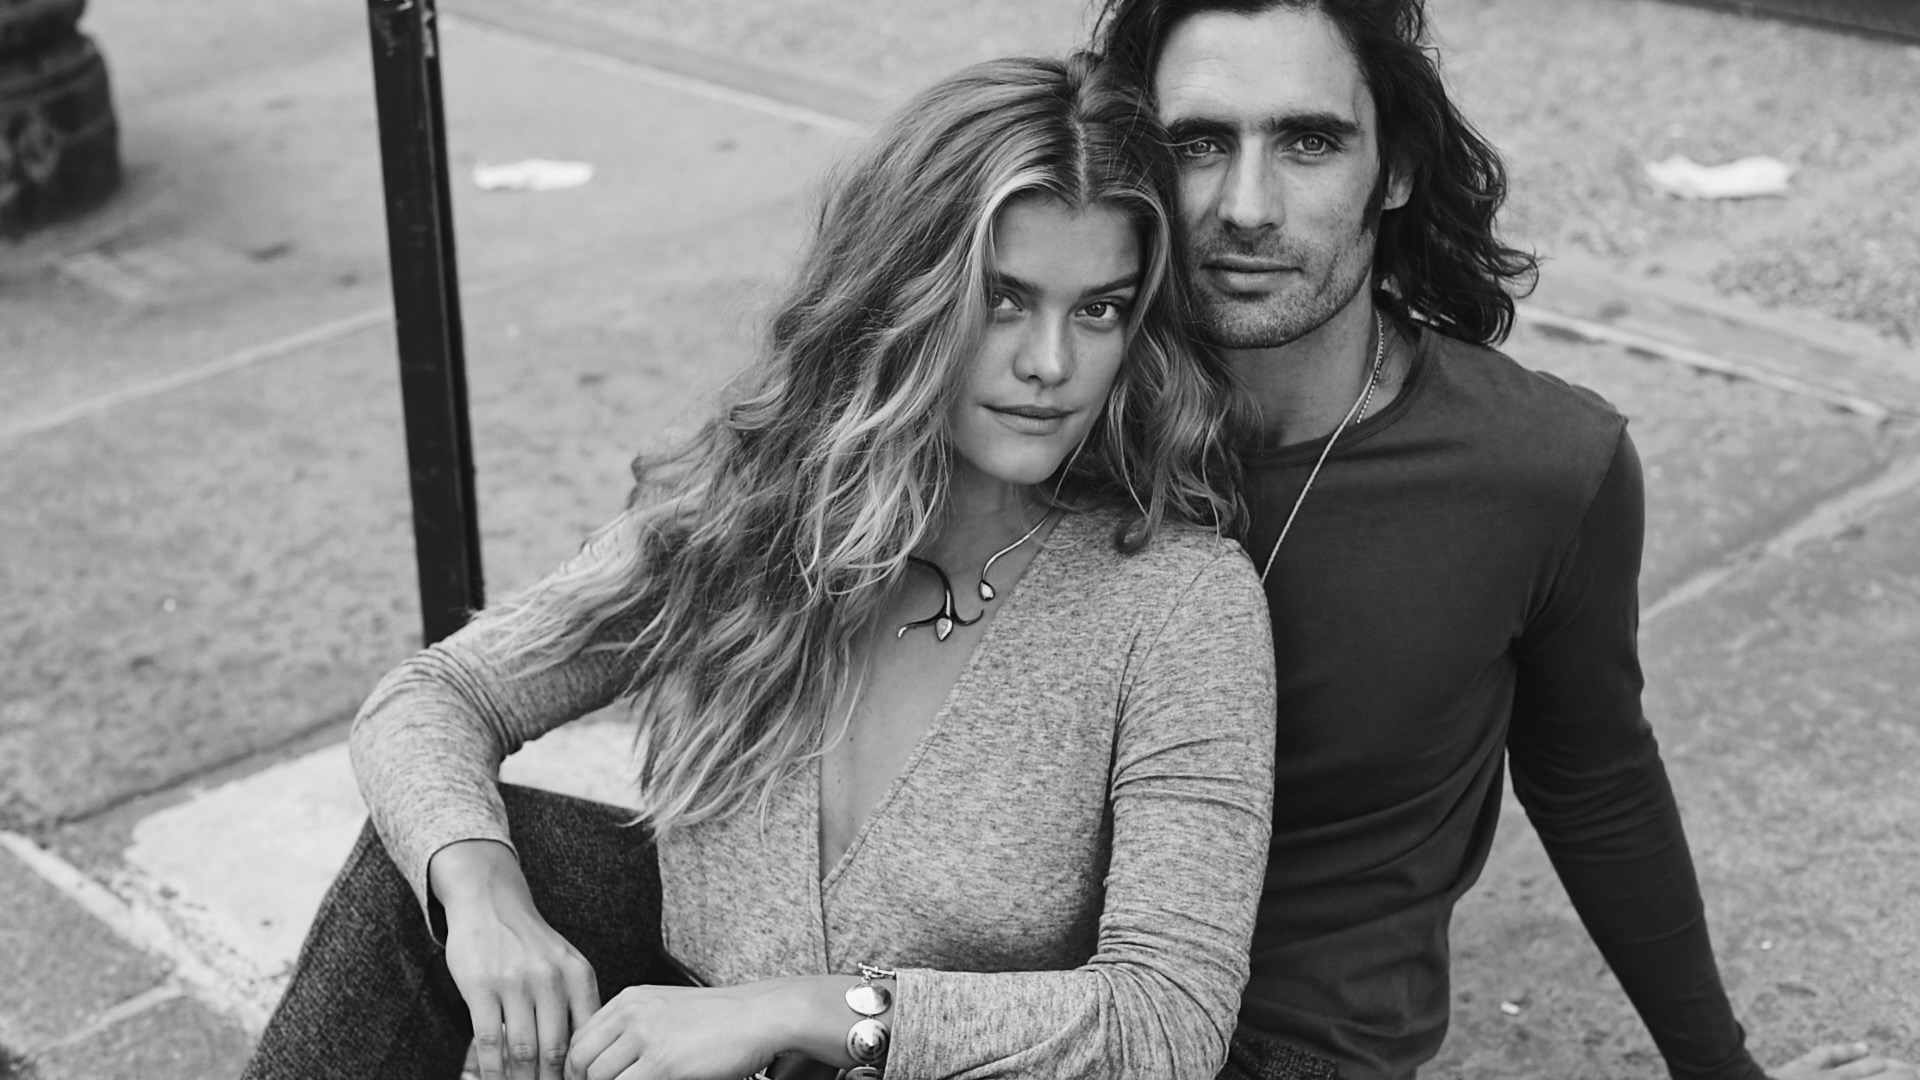 Video Still of Tyson Ritter and Nina Agdal by Lily Cummings